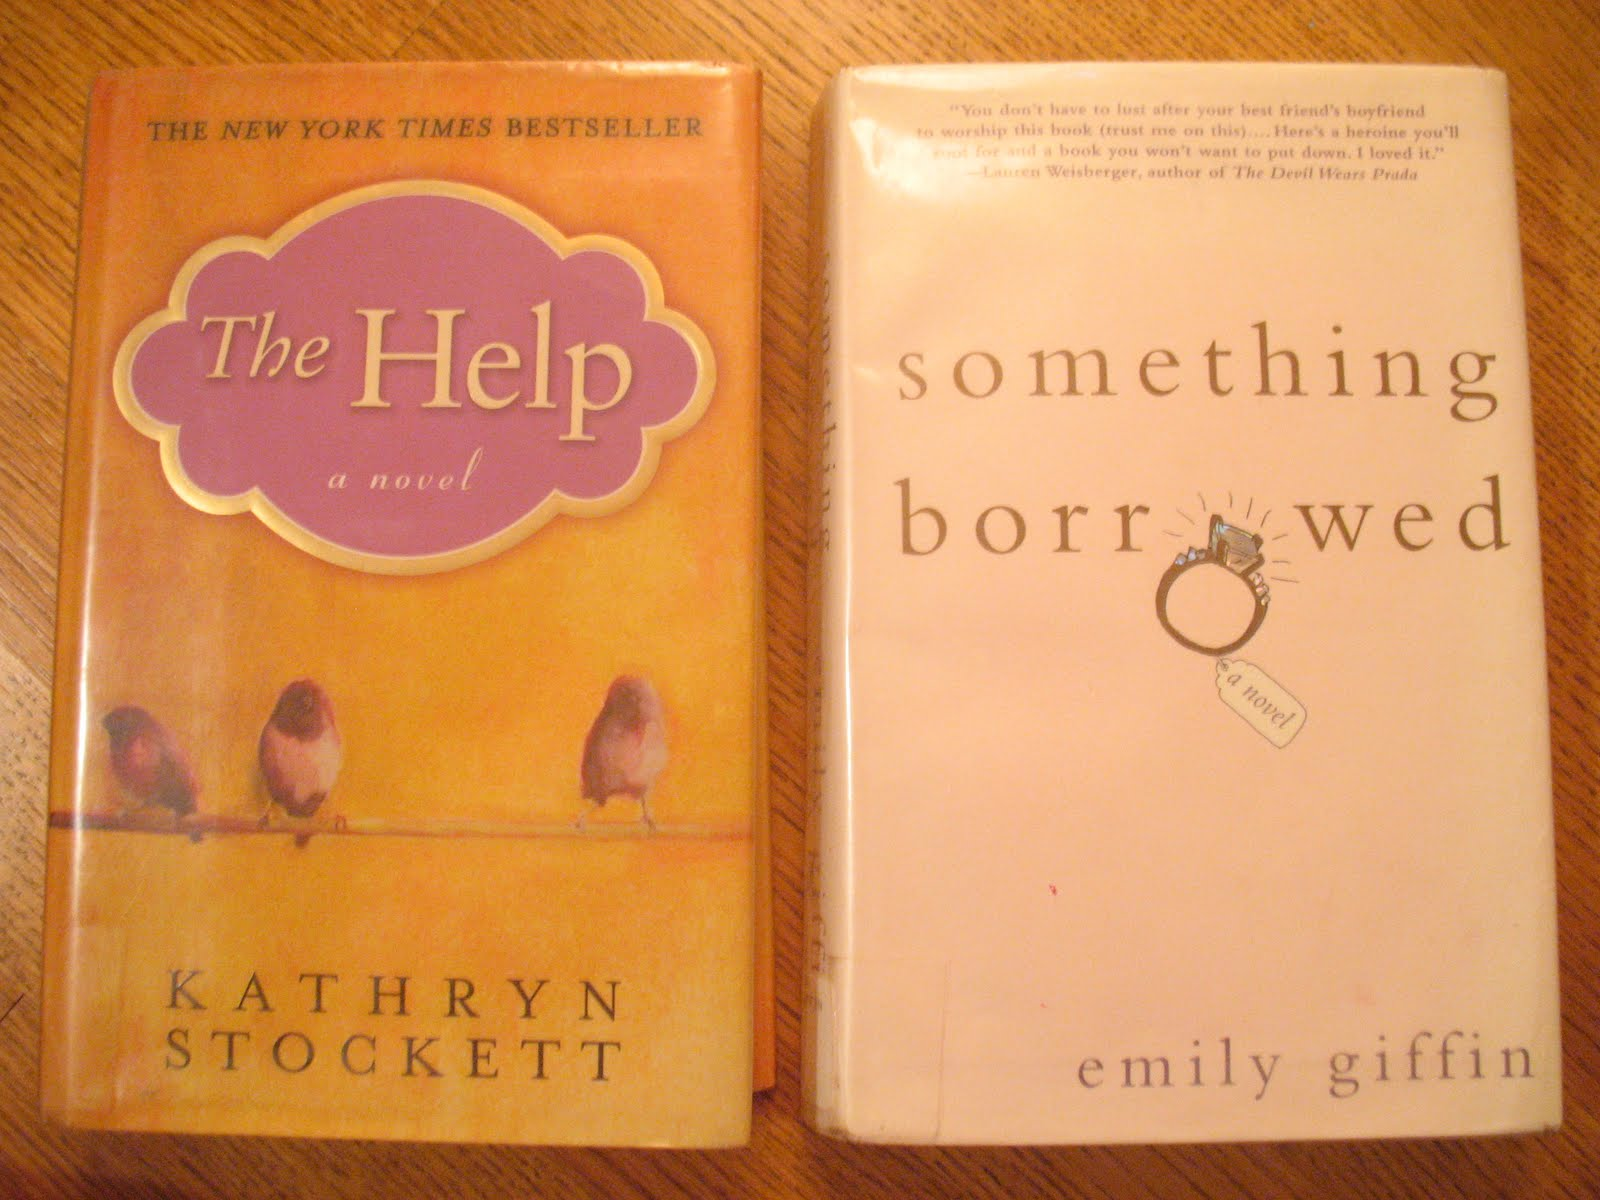 Kathryn Stockett Libros The Help Kathryn Stockett Ebook Free